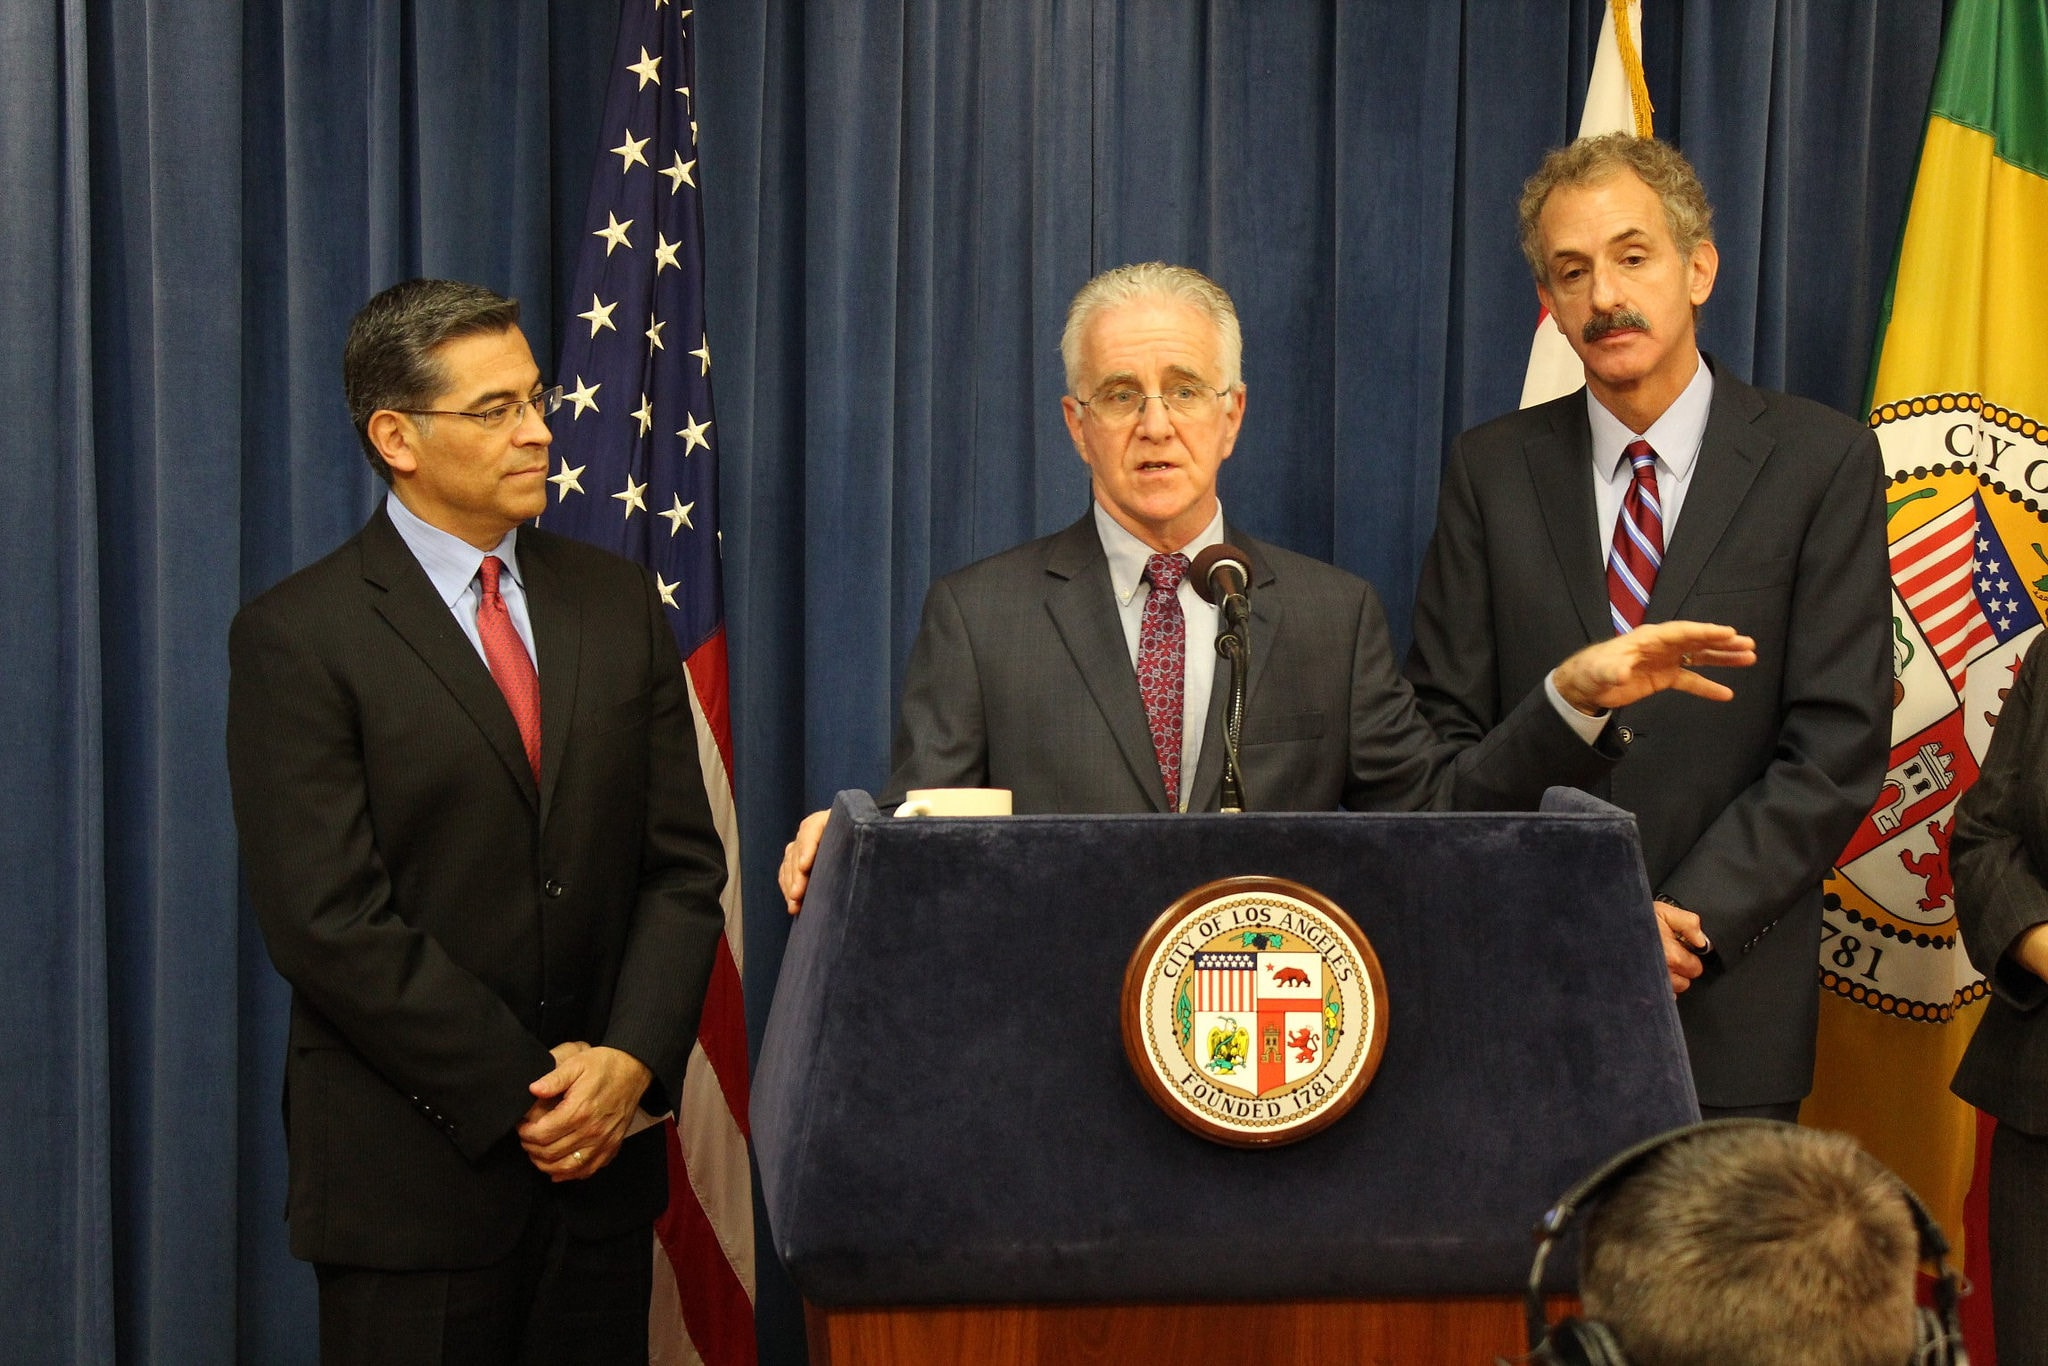 City Councilman Paul Krekorian, center, speaking with California Attorney General Xavier Becerra and Los Angeles City Attorney Mike Feuer on Feb. 6, 2018 in the wake of a seizure of 25 guns from an area man. (Photo: Krekorian's office)